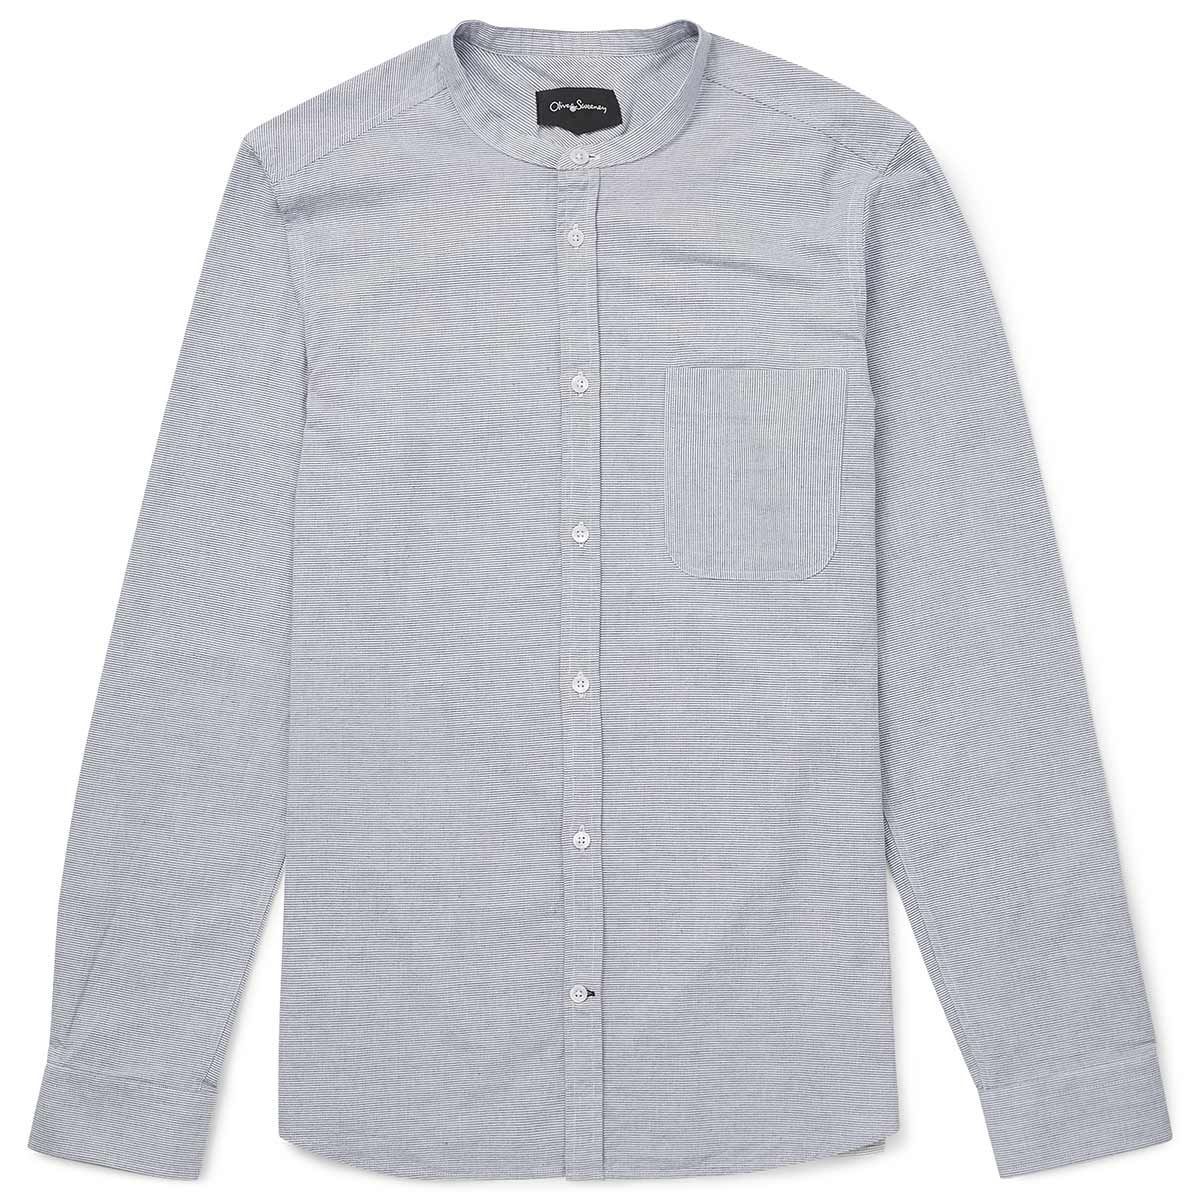 Oliver Sweeney Styles Blue/White - Striped Cotton Grandad Collar Shirt